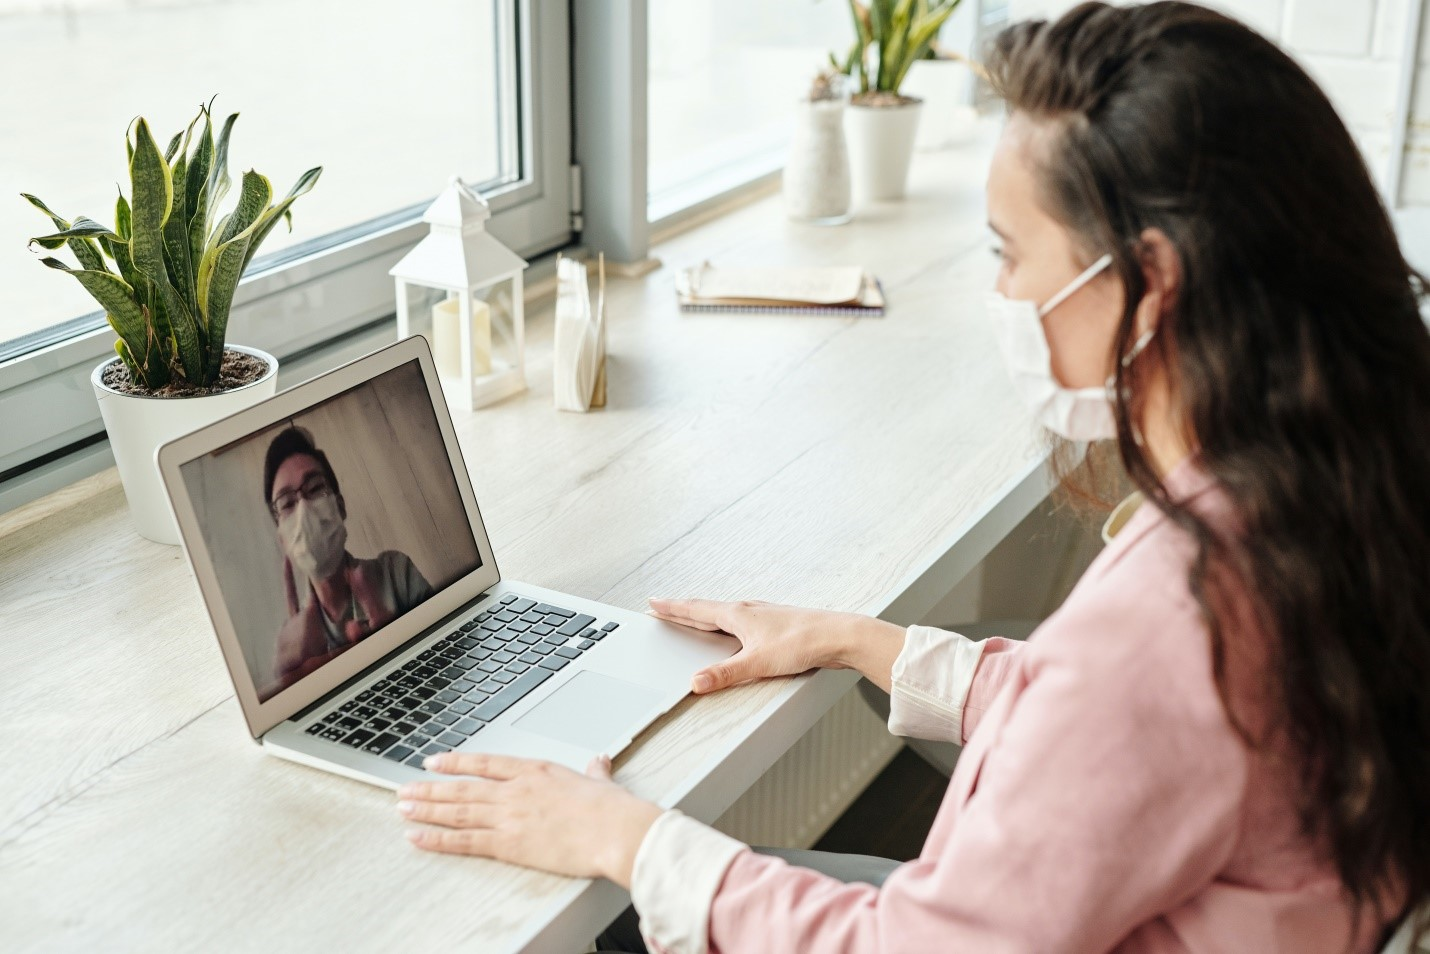 An online video consultation between a patient and doctor